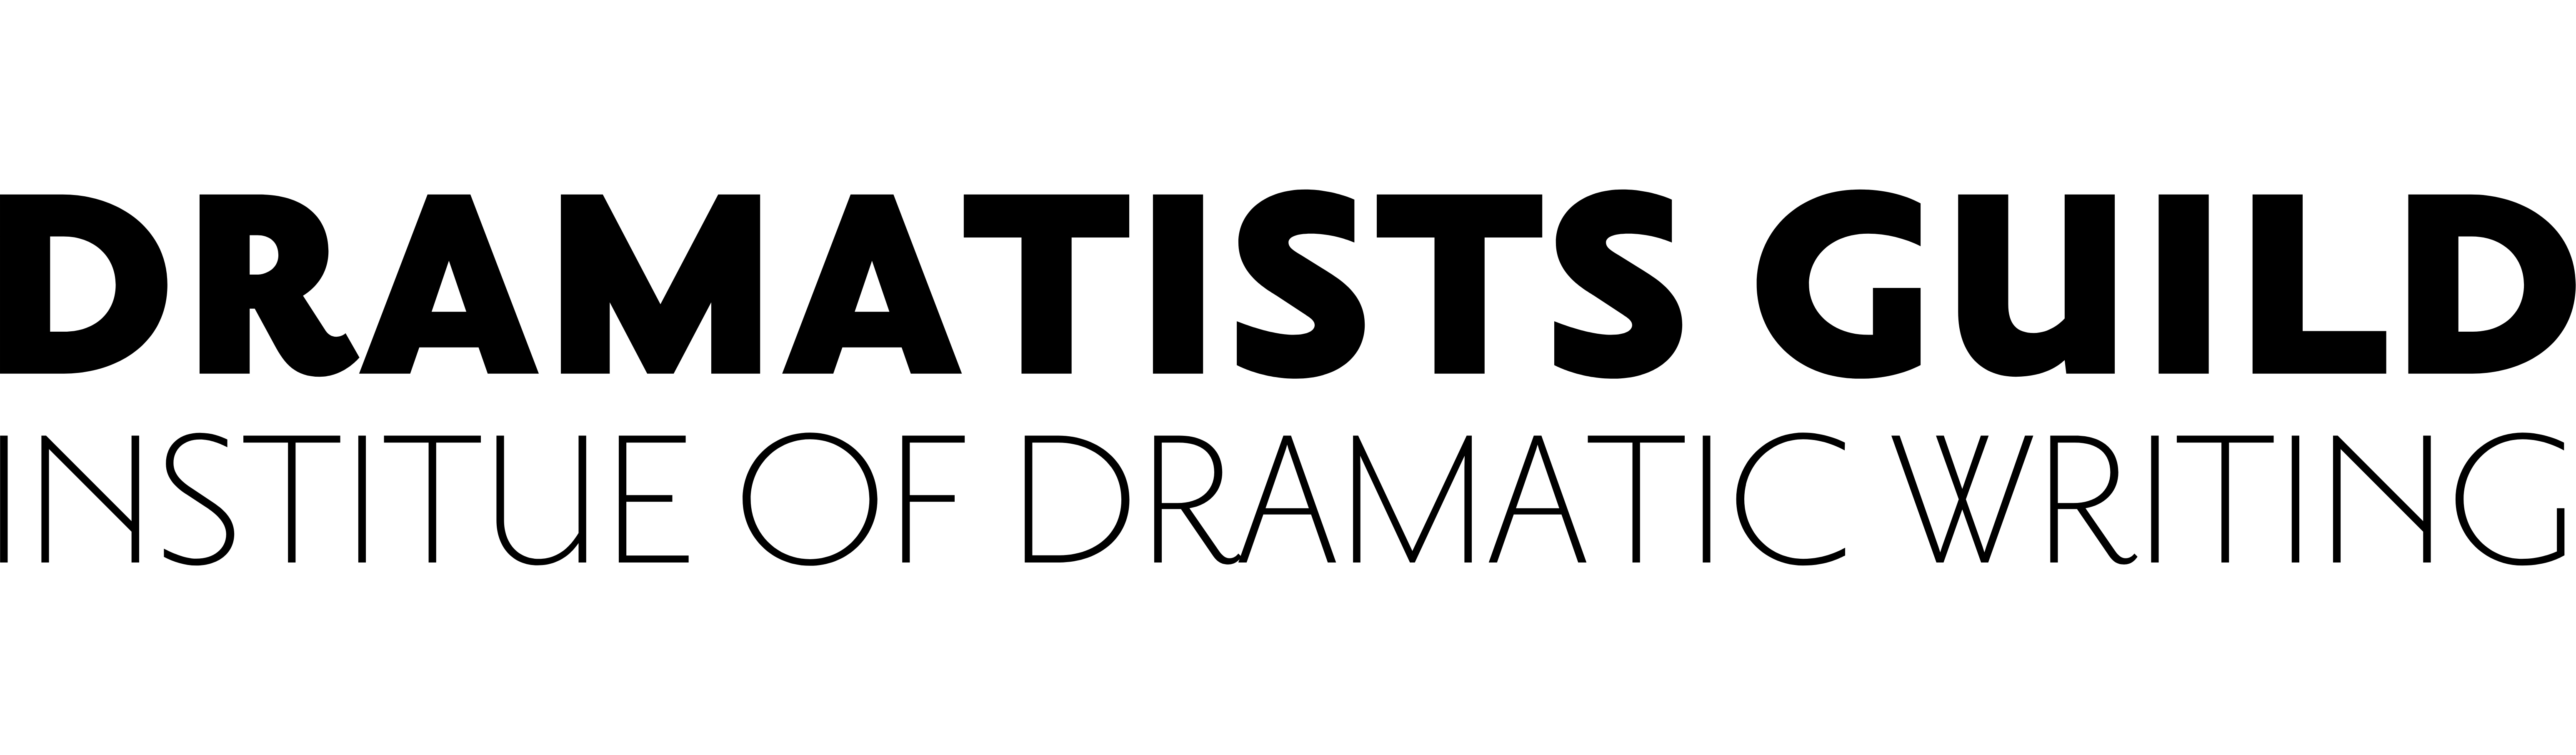 Dramatists Guild Institute